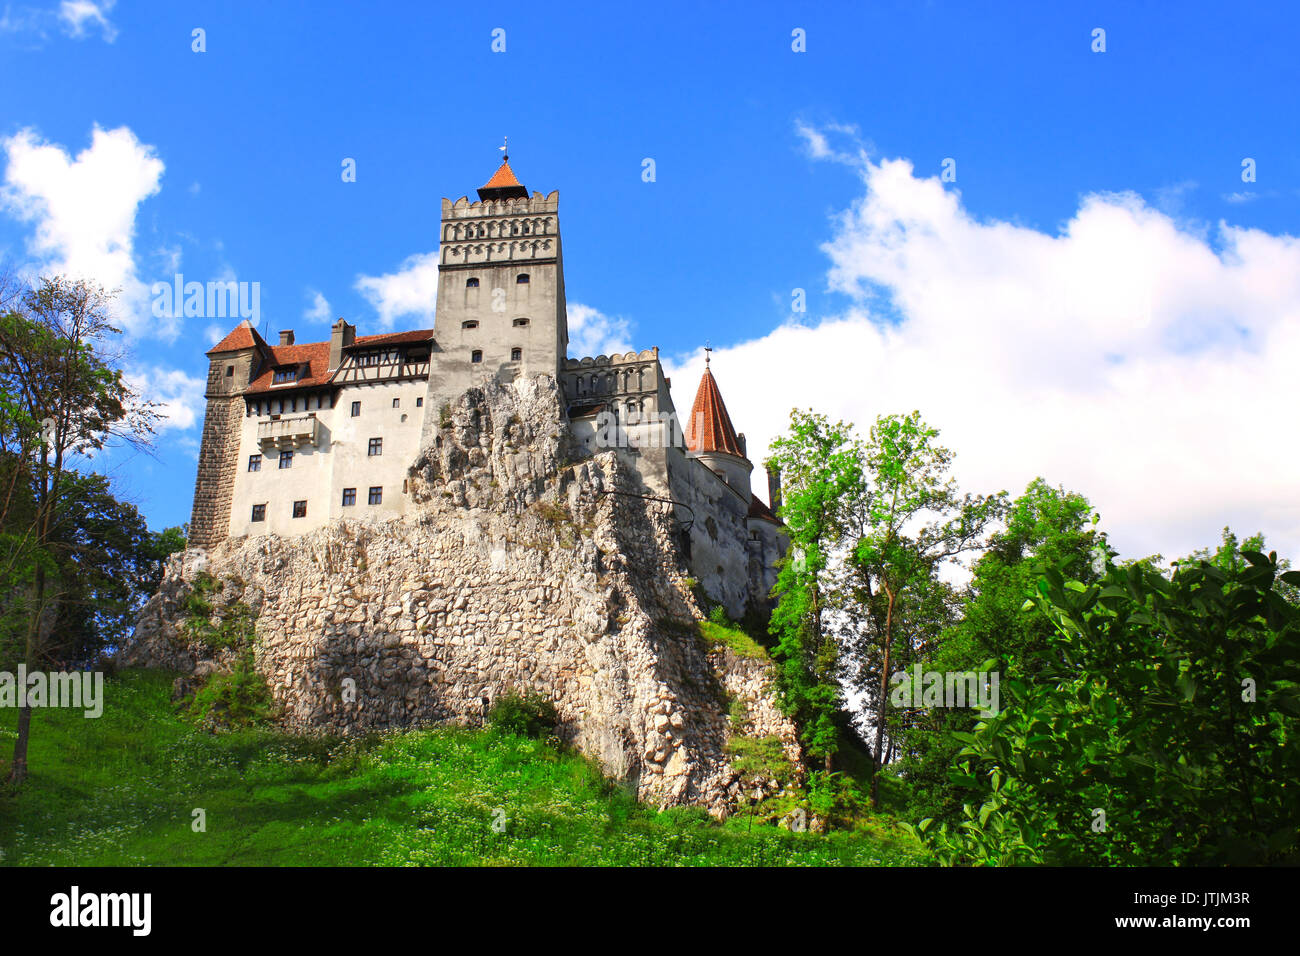 Medieval Castle of Bran (known as the Dracula's castle), Brasov, Transylvania, Romania - Stock Image